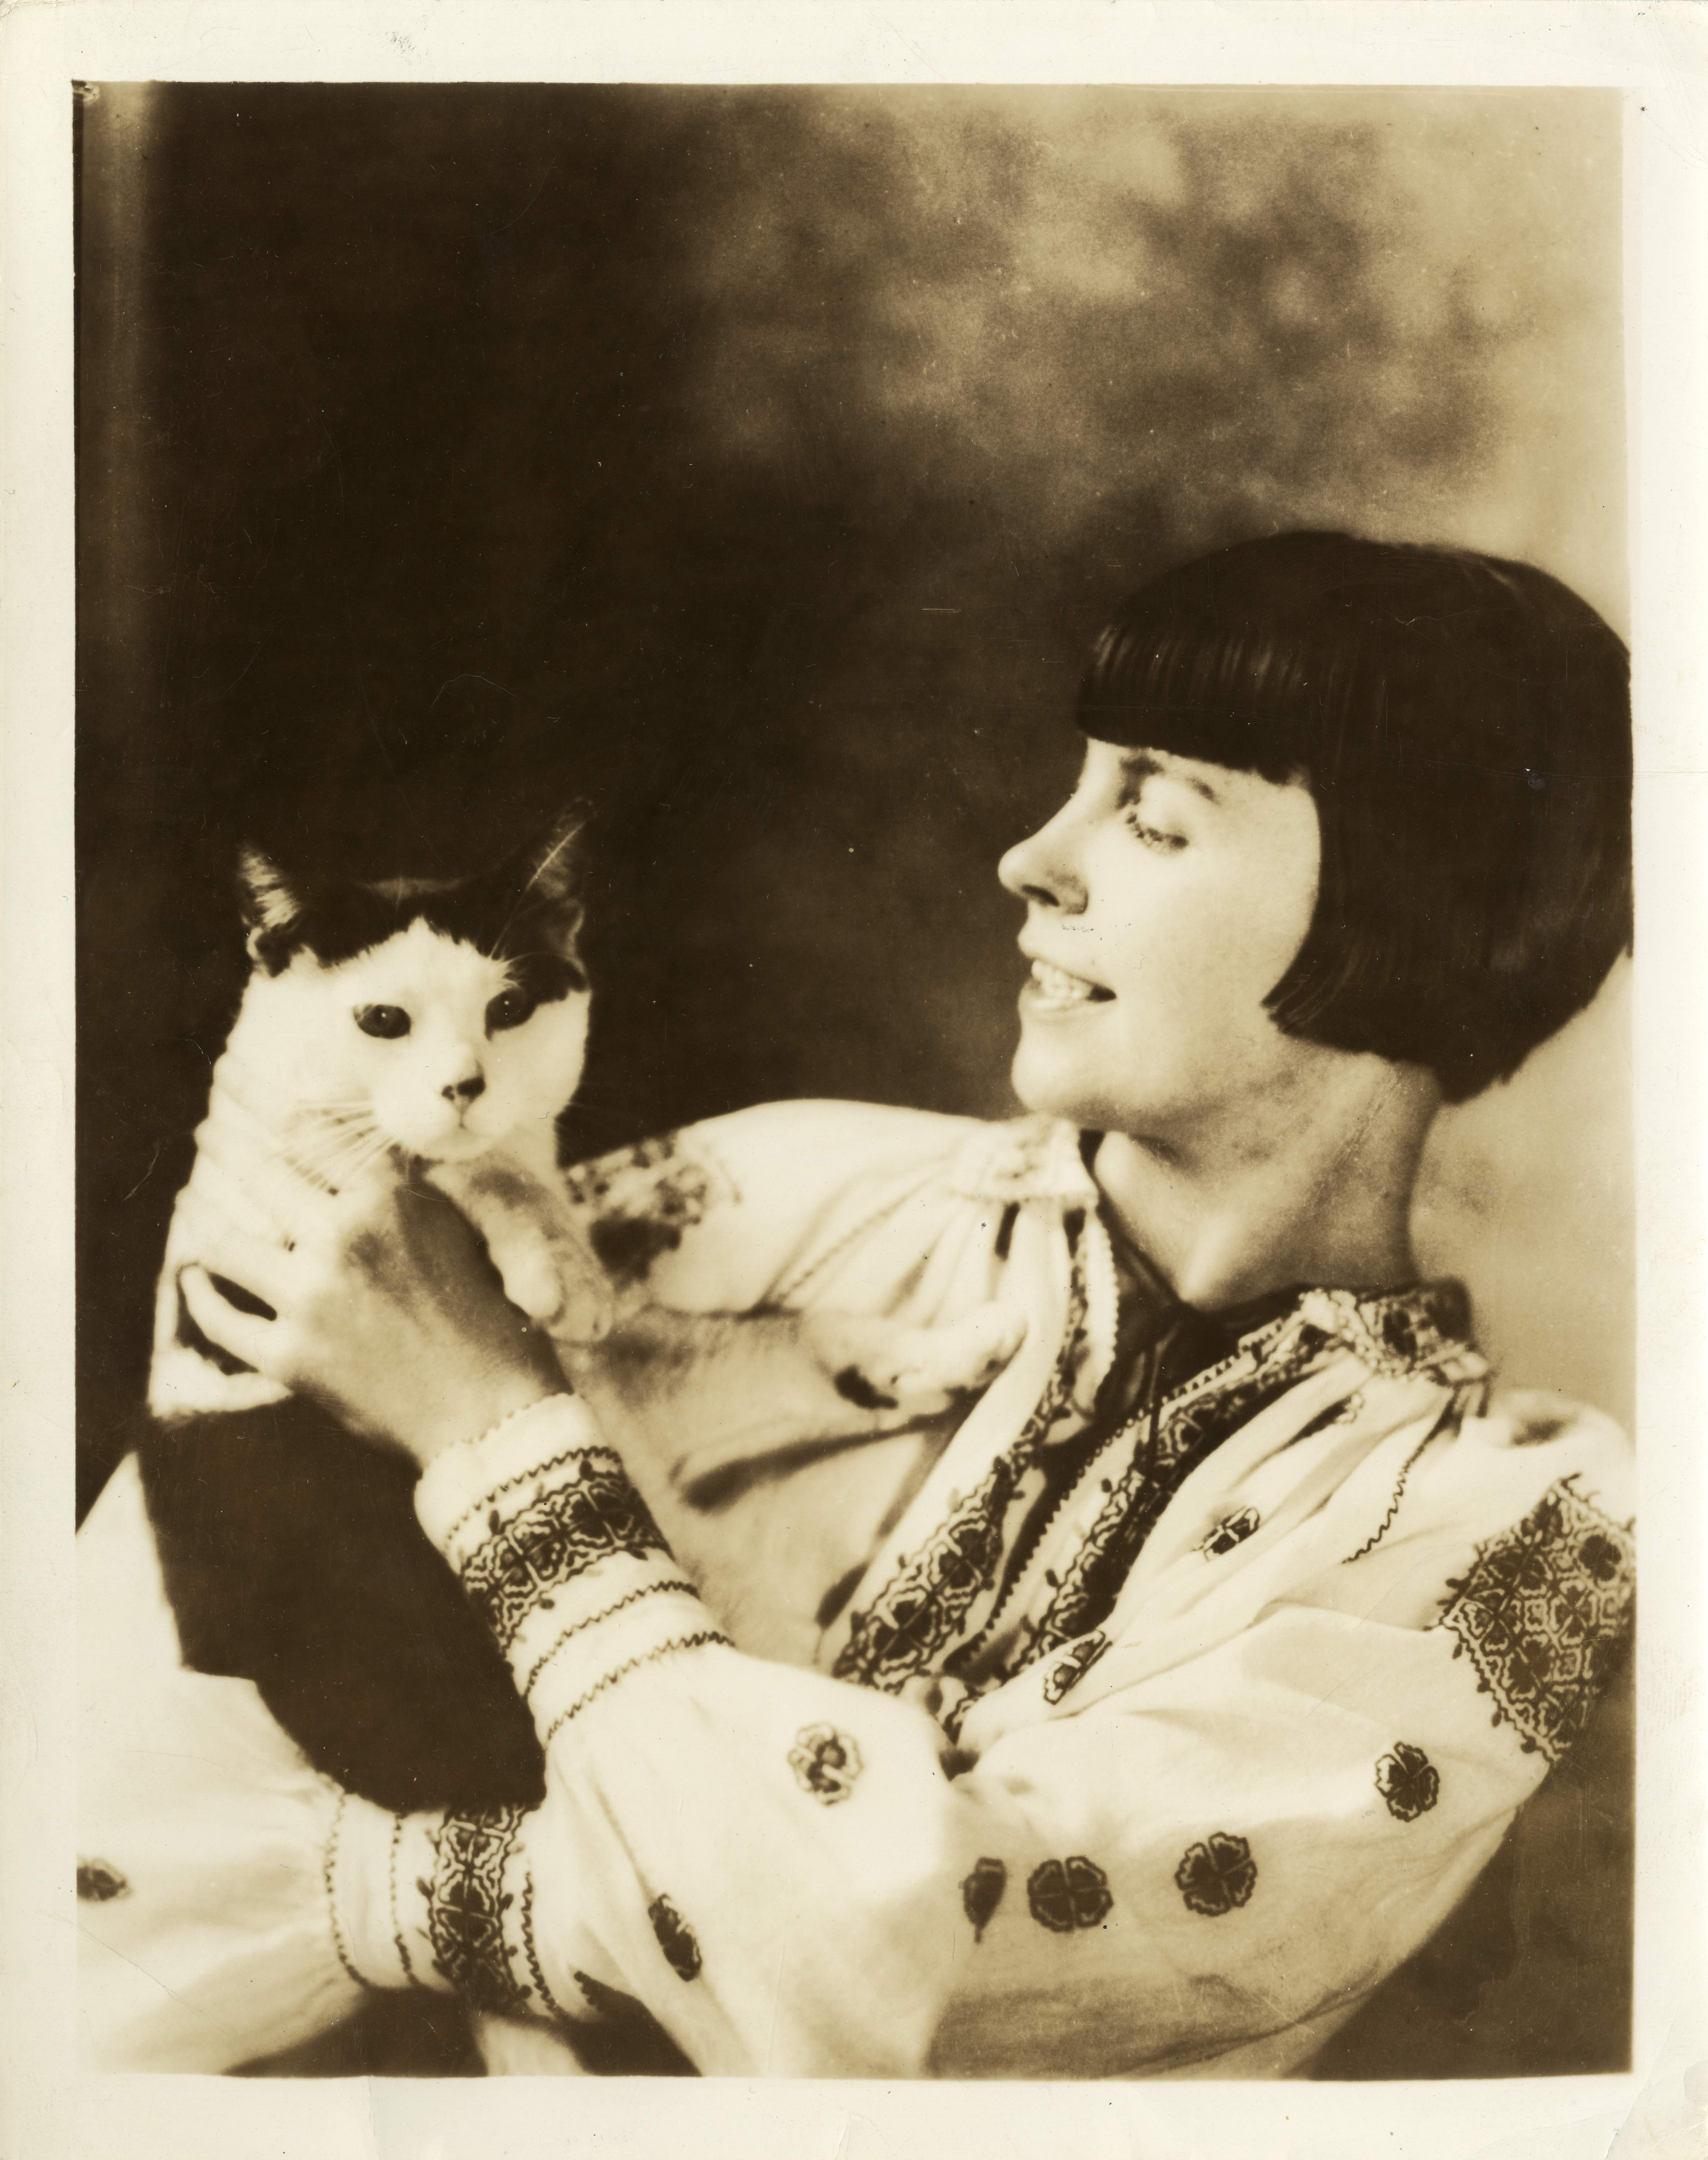 Caption: Wanda Gag and her cat, Snoopy., Credit: Children's Literature Research Collections, University of Minnesota Libraries